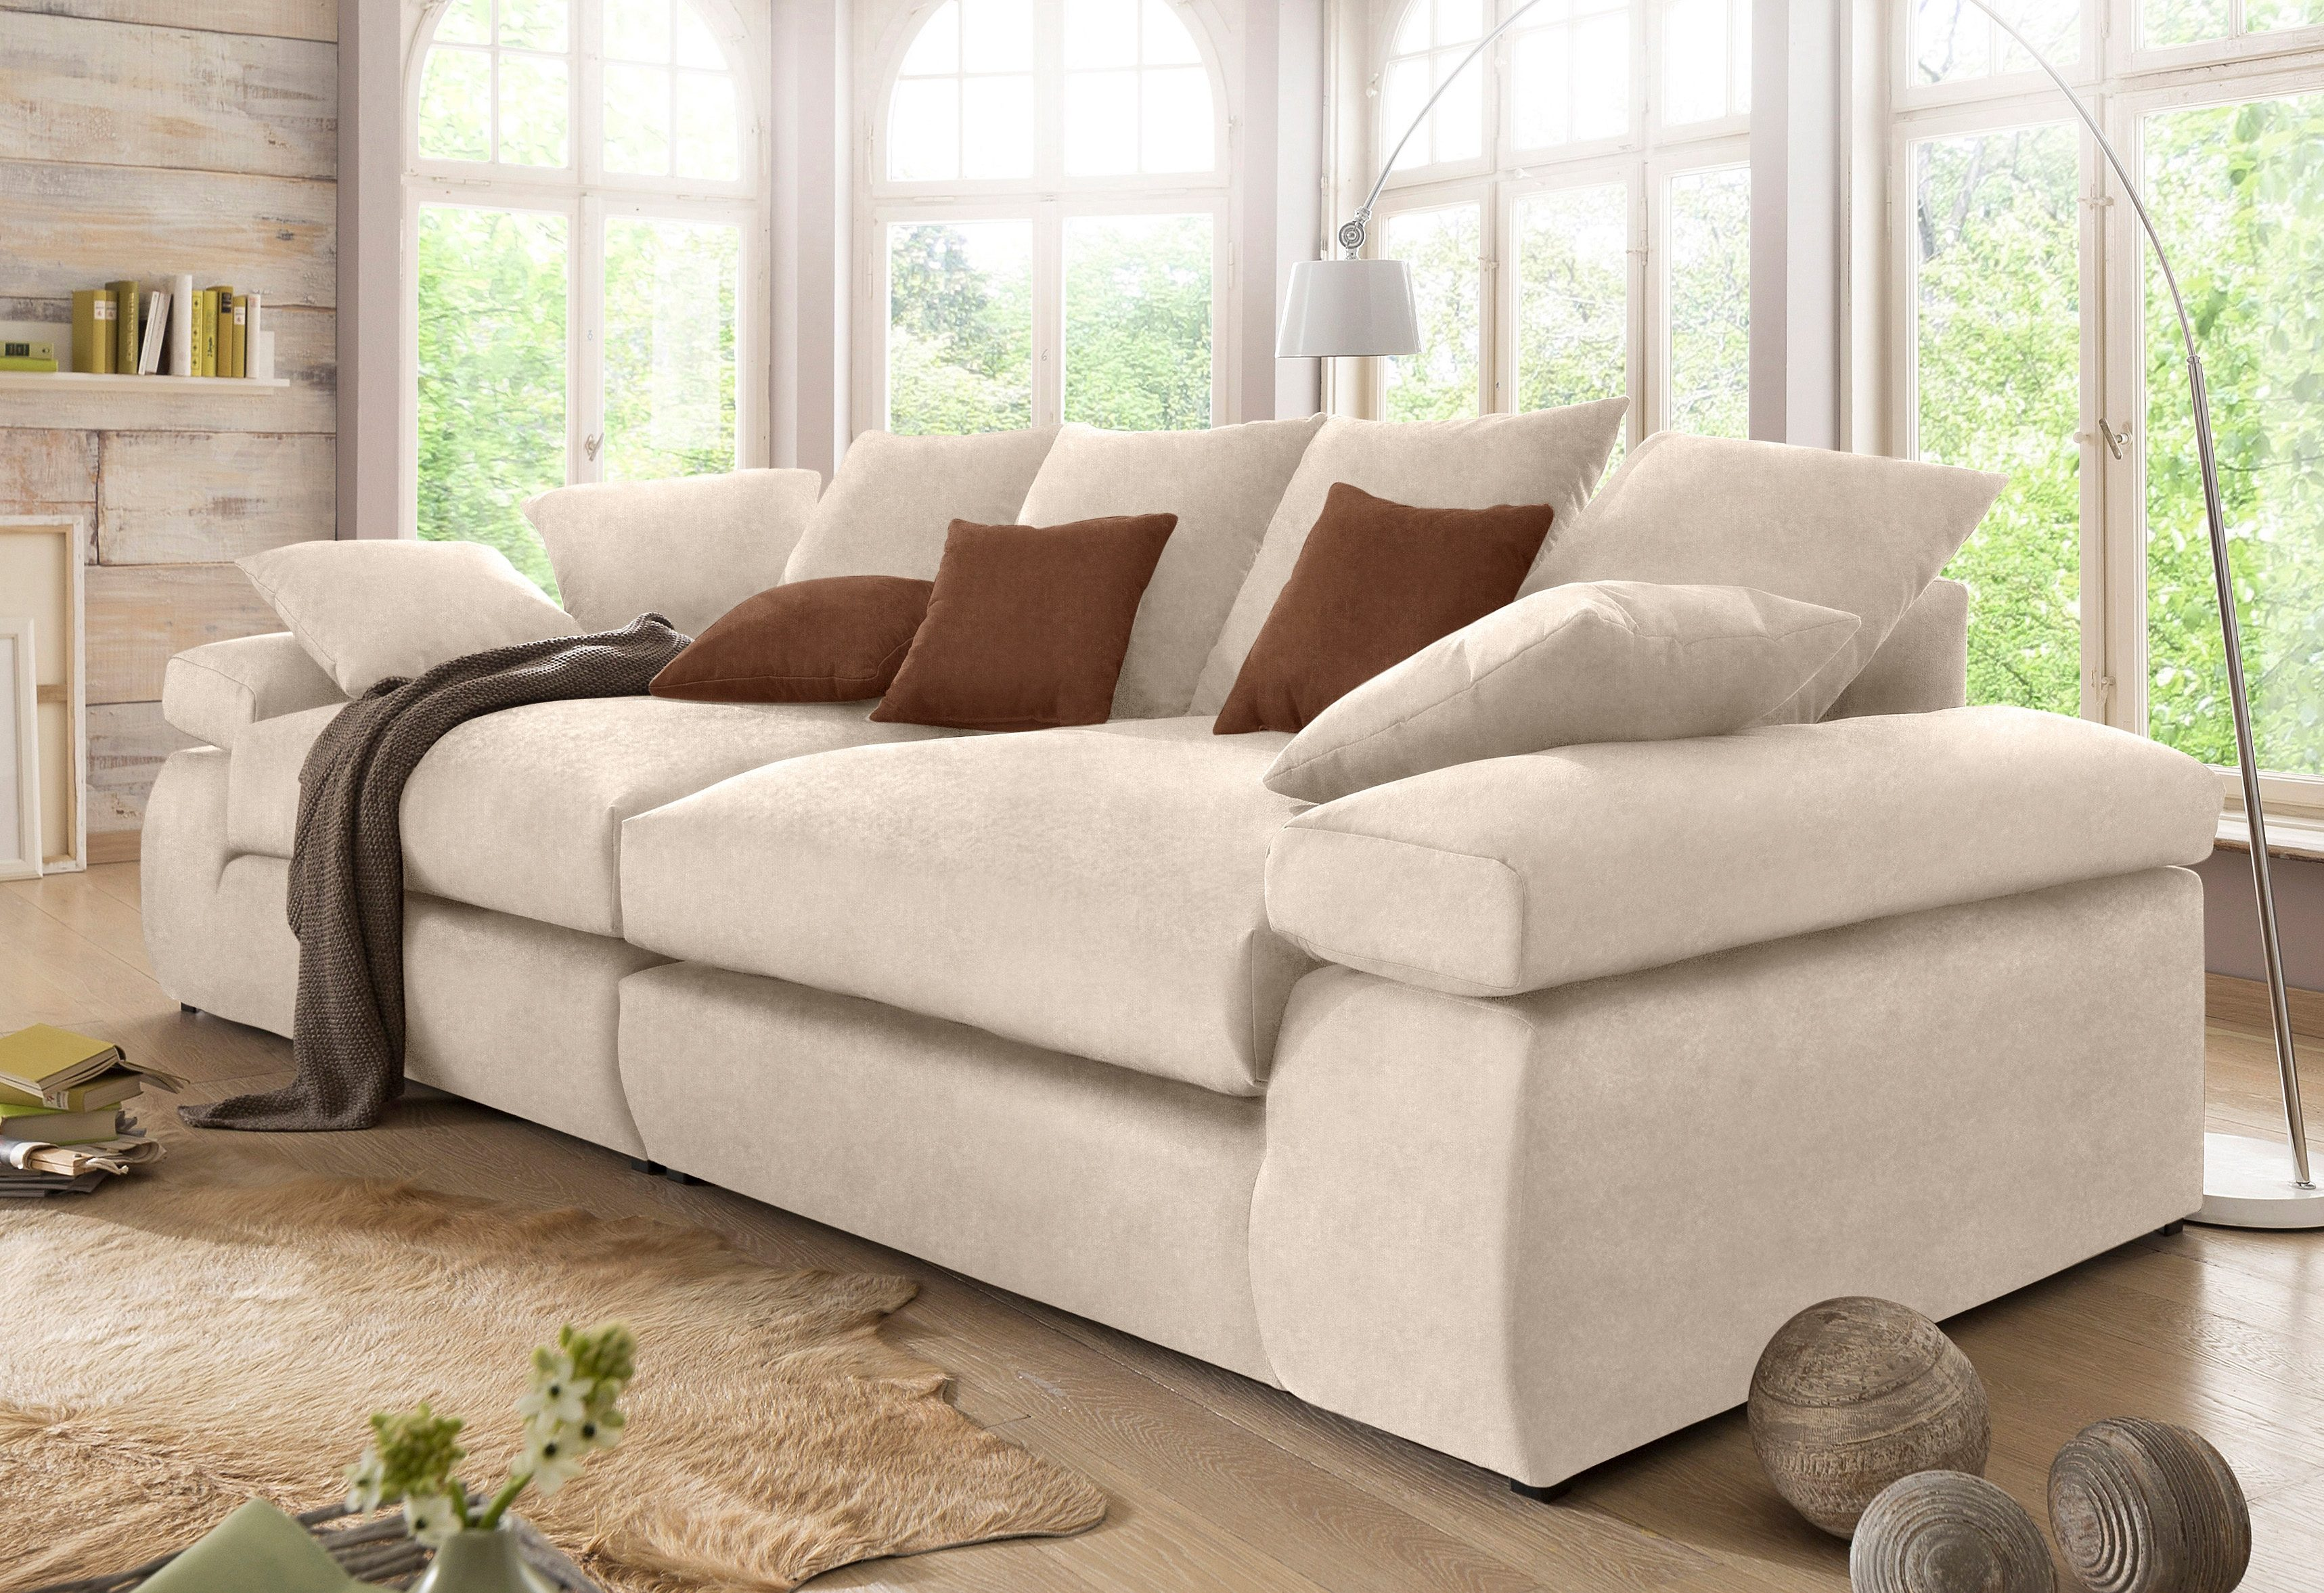 Xxl Sofa Home Affaire Big-sofa Online Kaufen | Otto